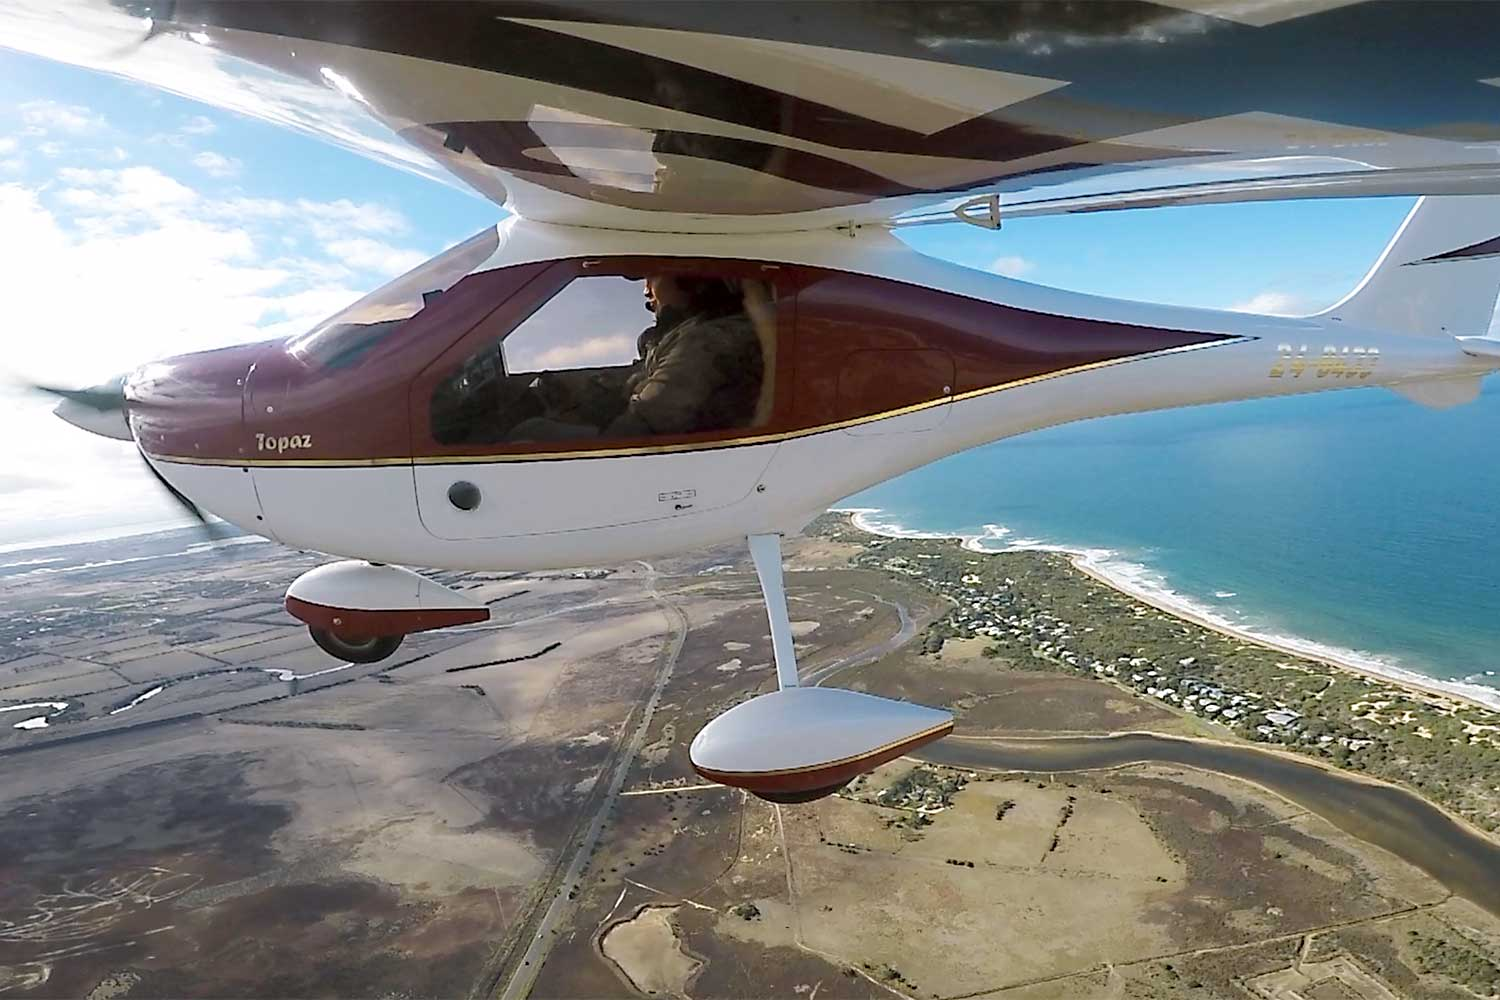 45-minute instructional flight experience